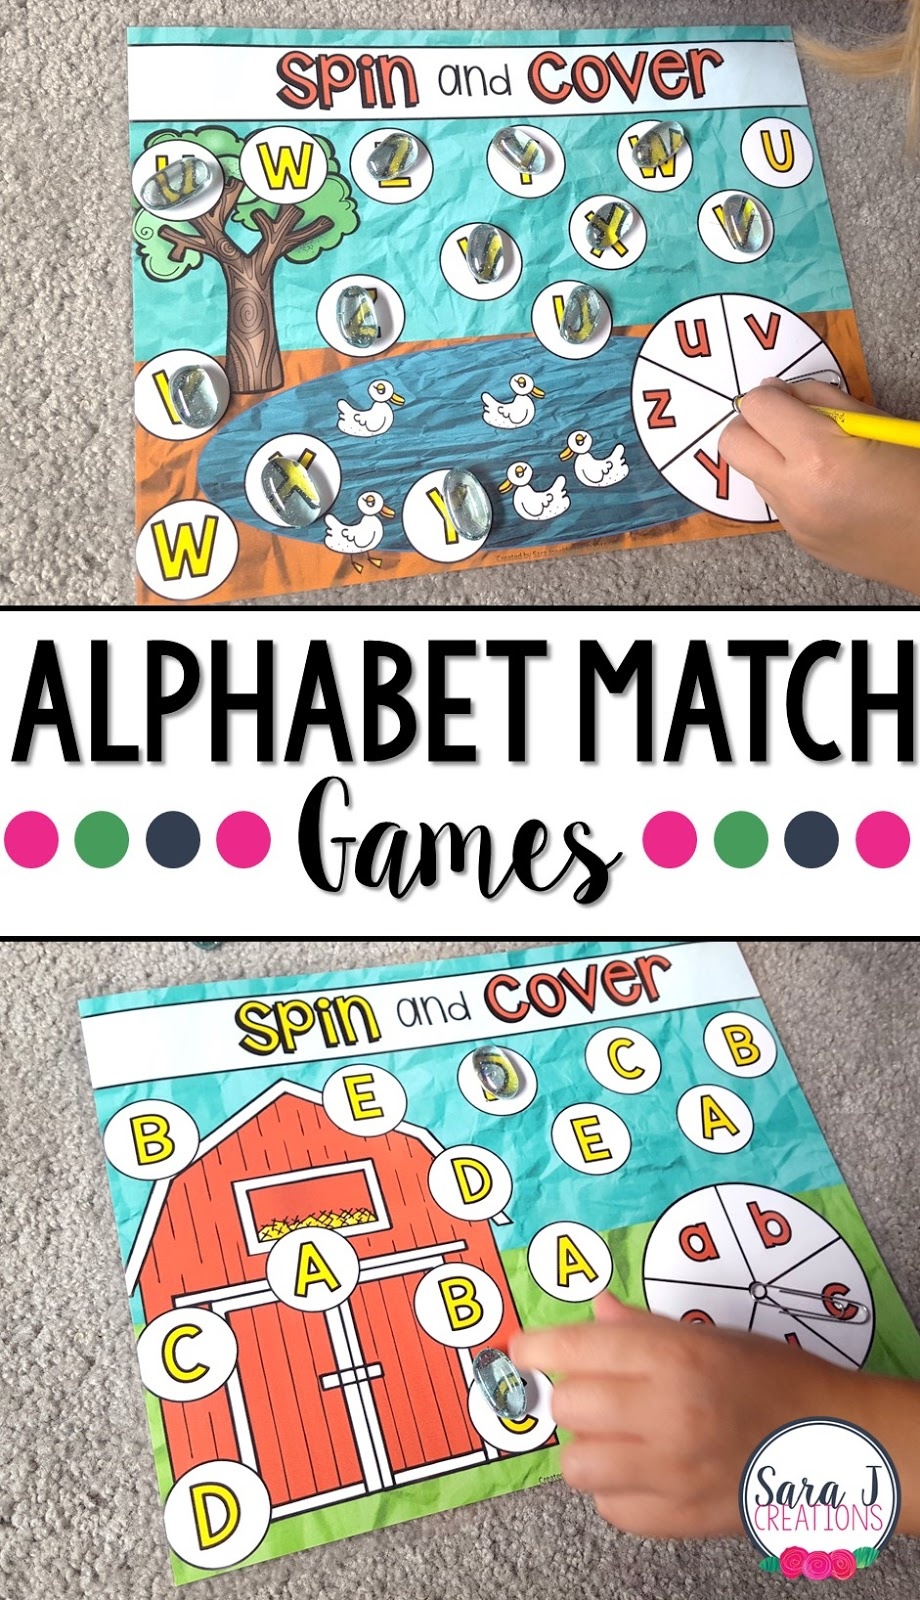 image regarding Alphabet Matching Game Printable titled Farm Alphabet Sport Sara J Creations